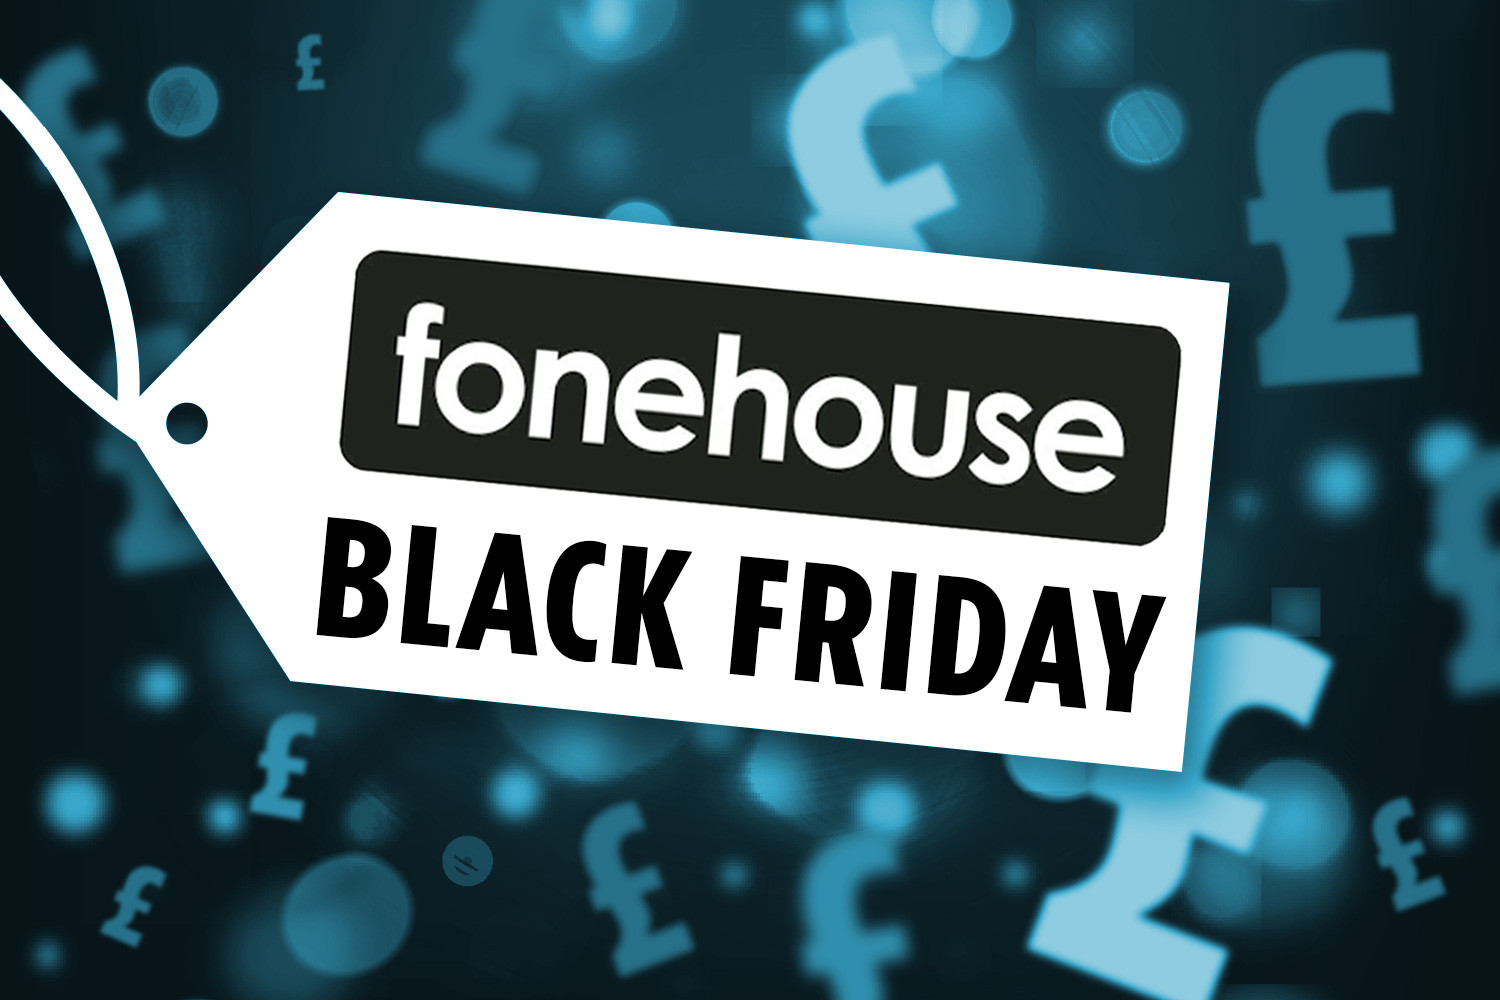 Fonehouse Black Friday Deals 2019: Ne bekleniyor? 1